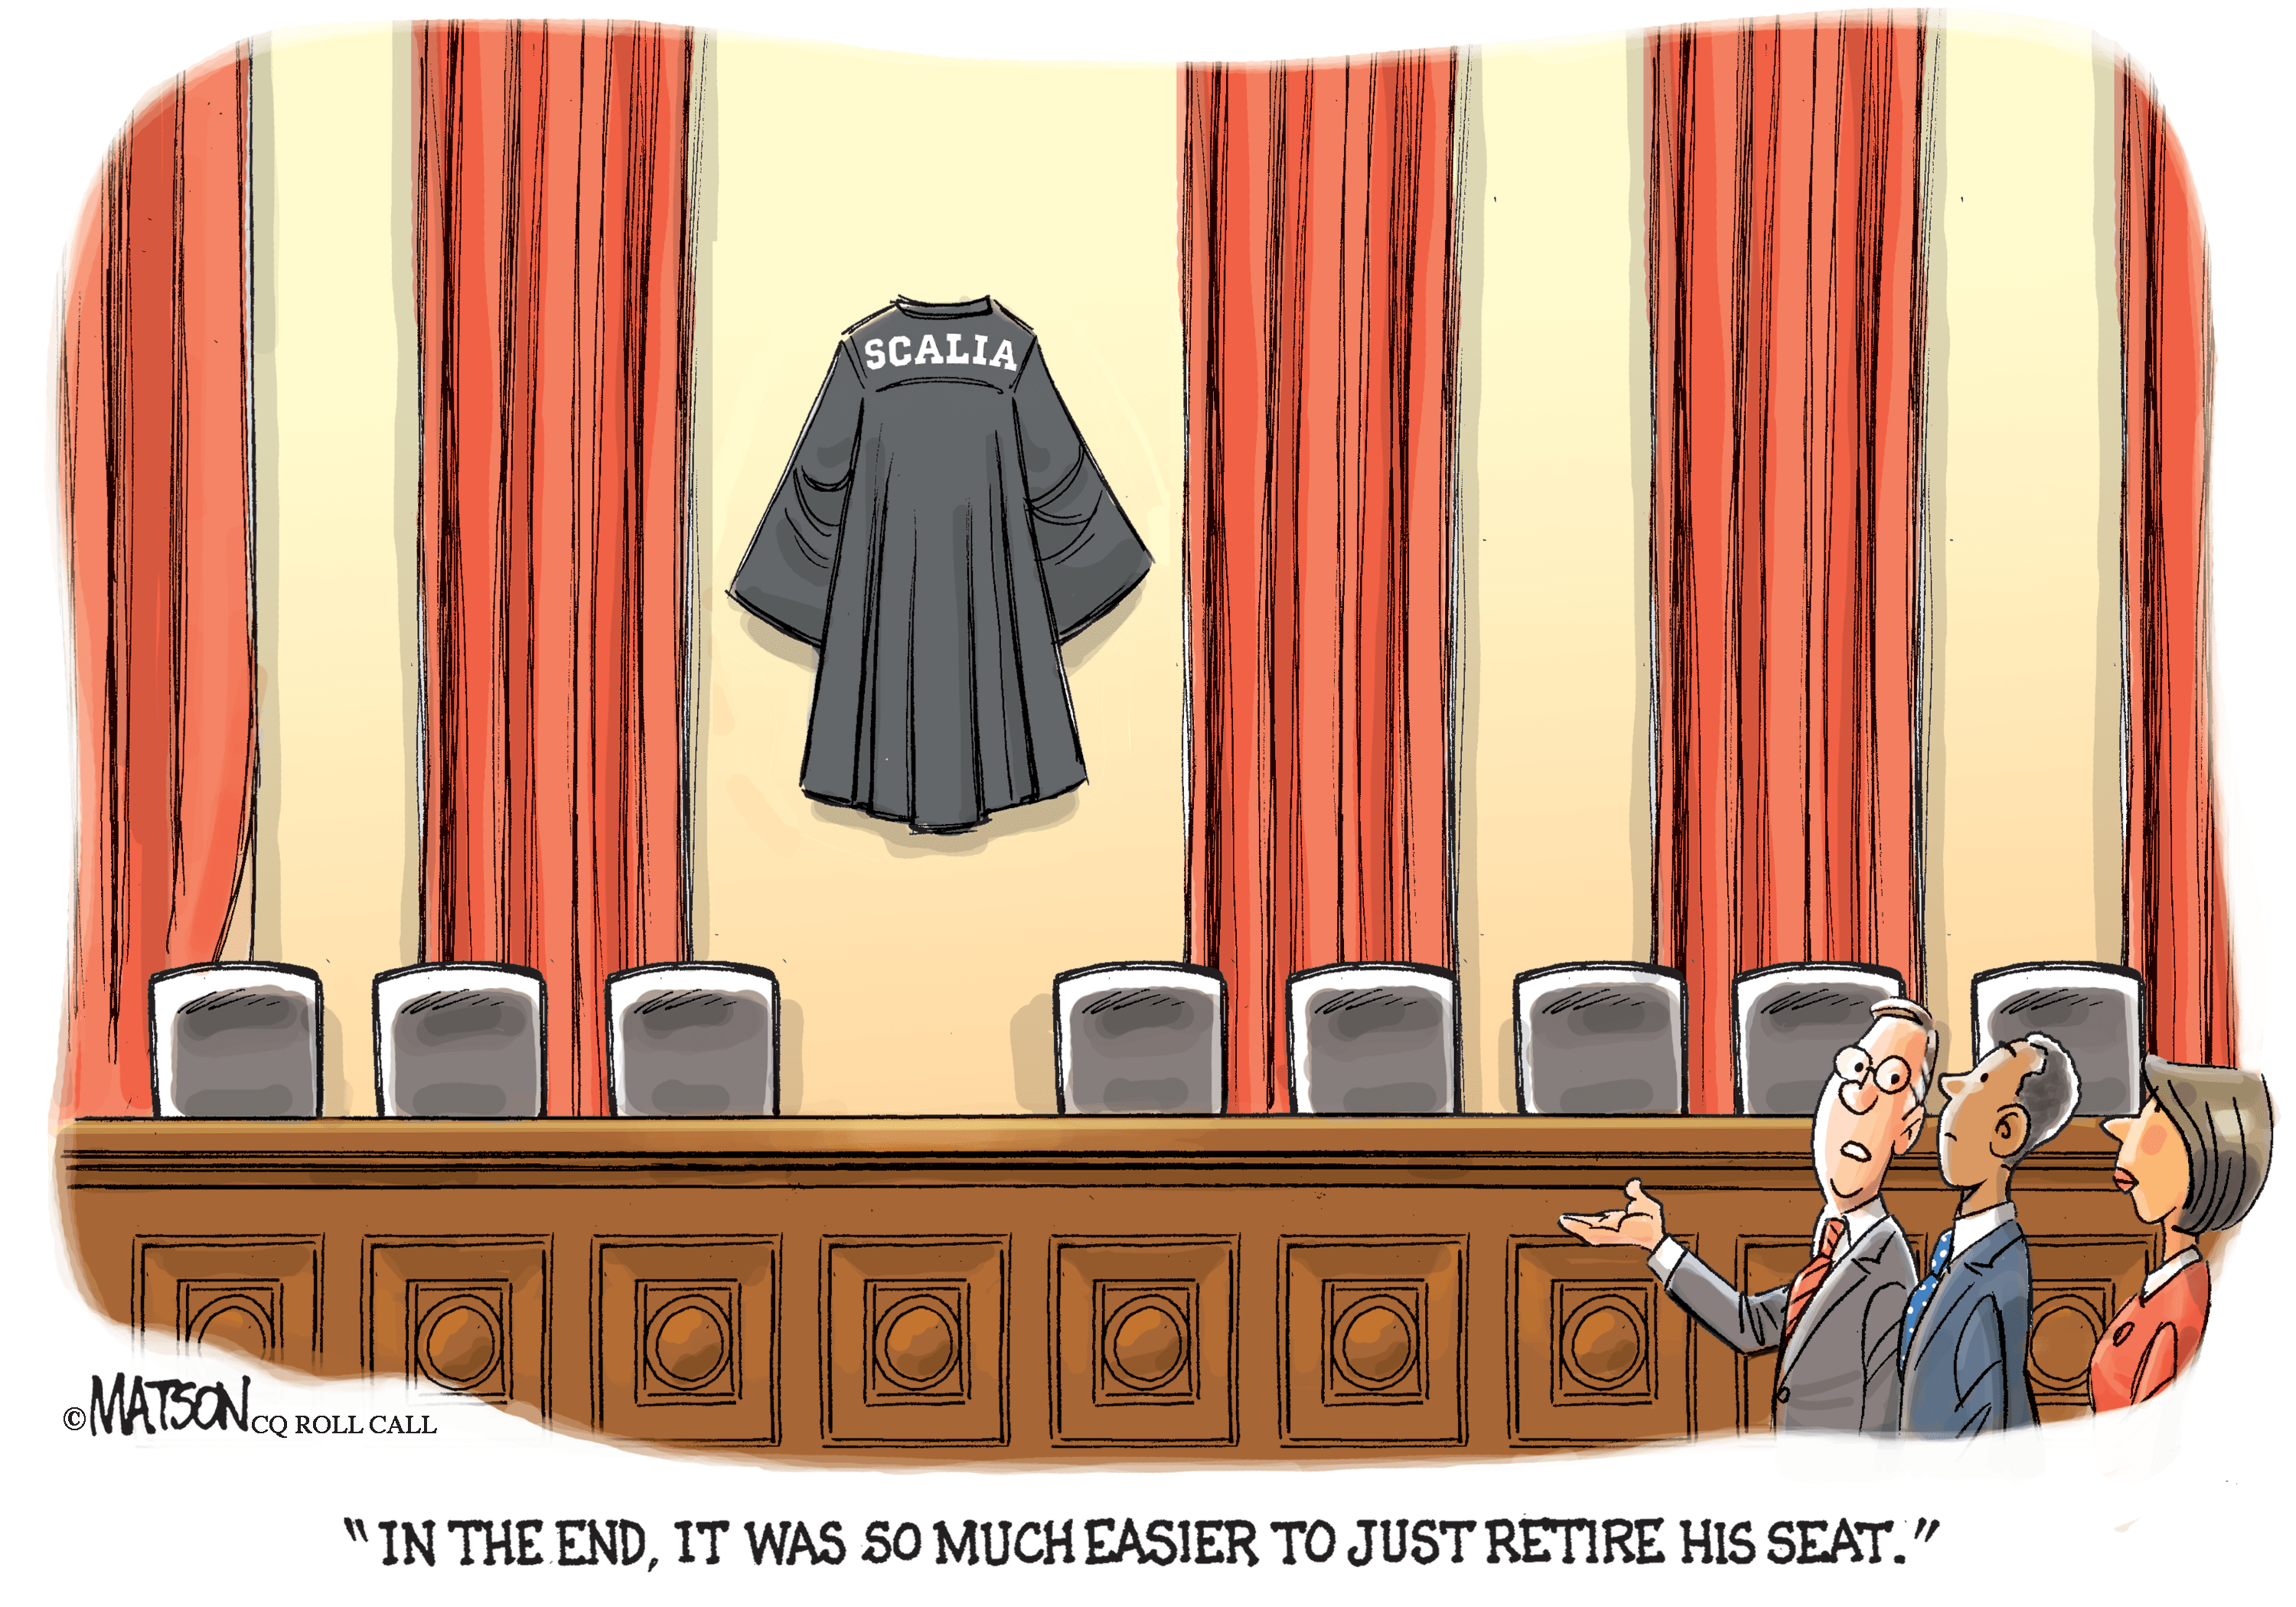 In the end, it was so much easier to just retire his seat.